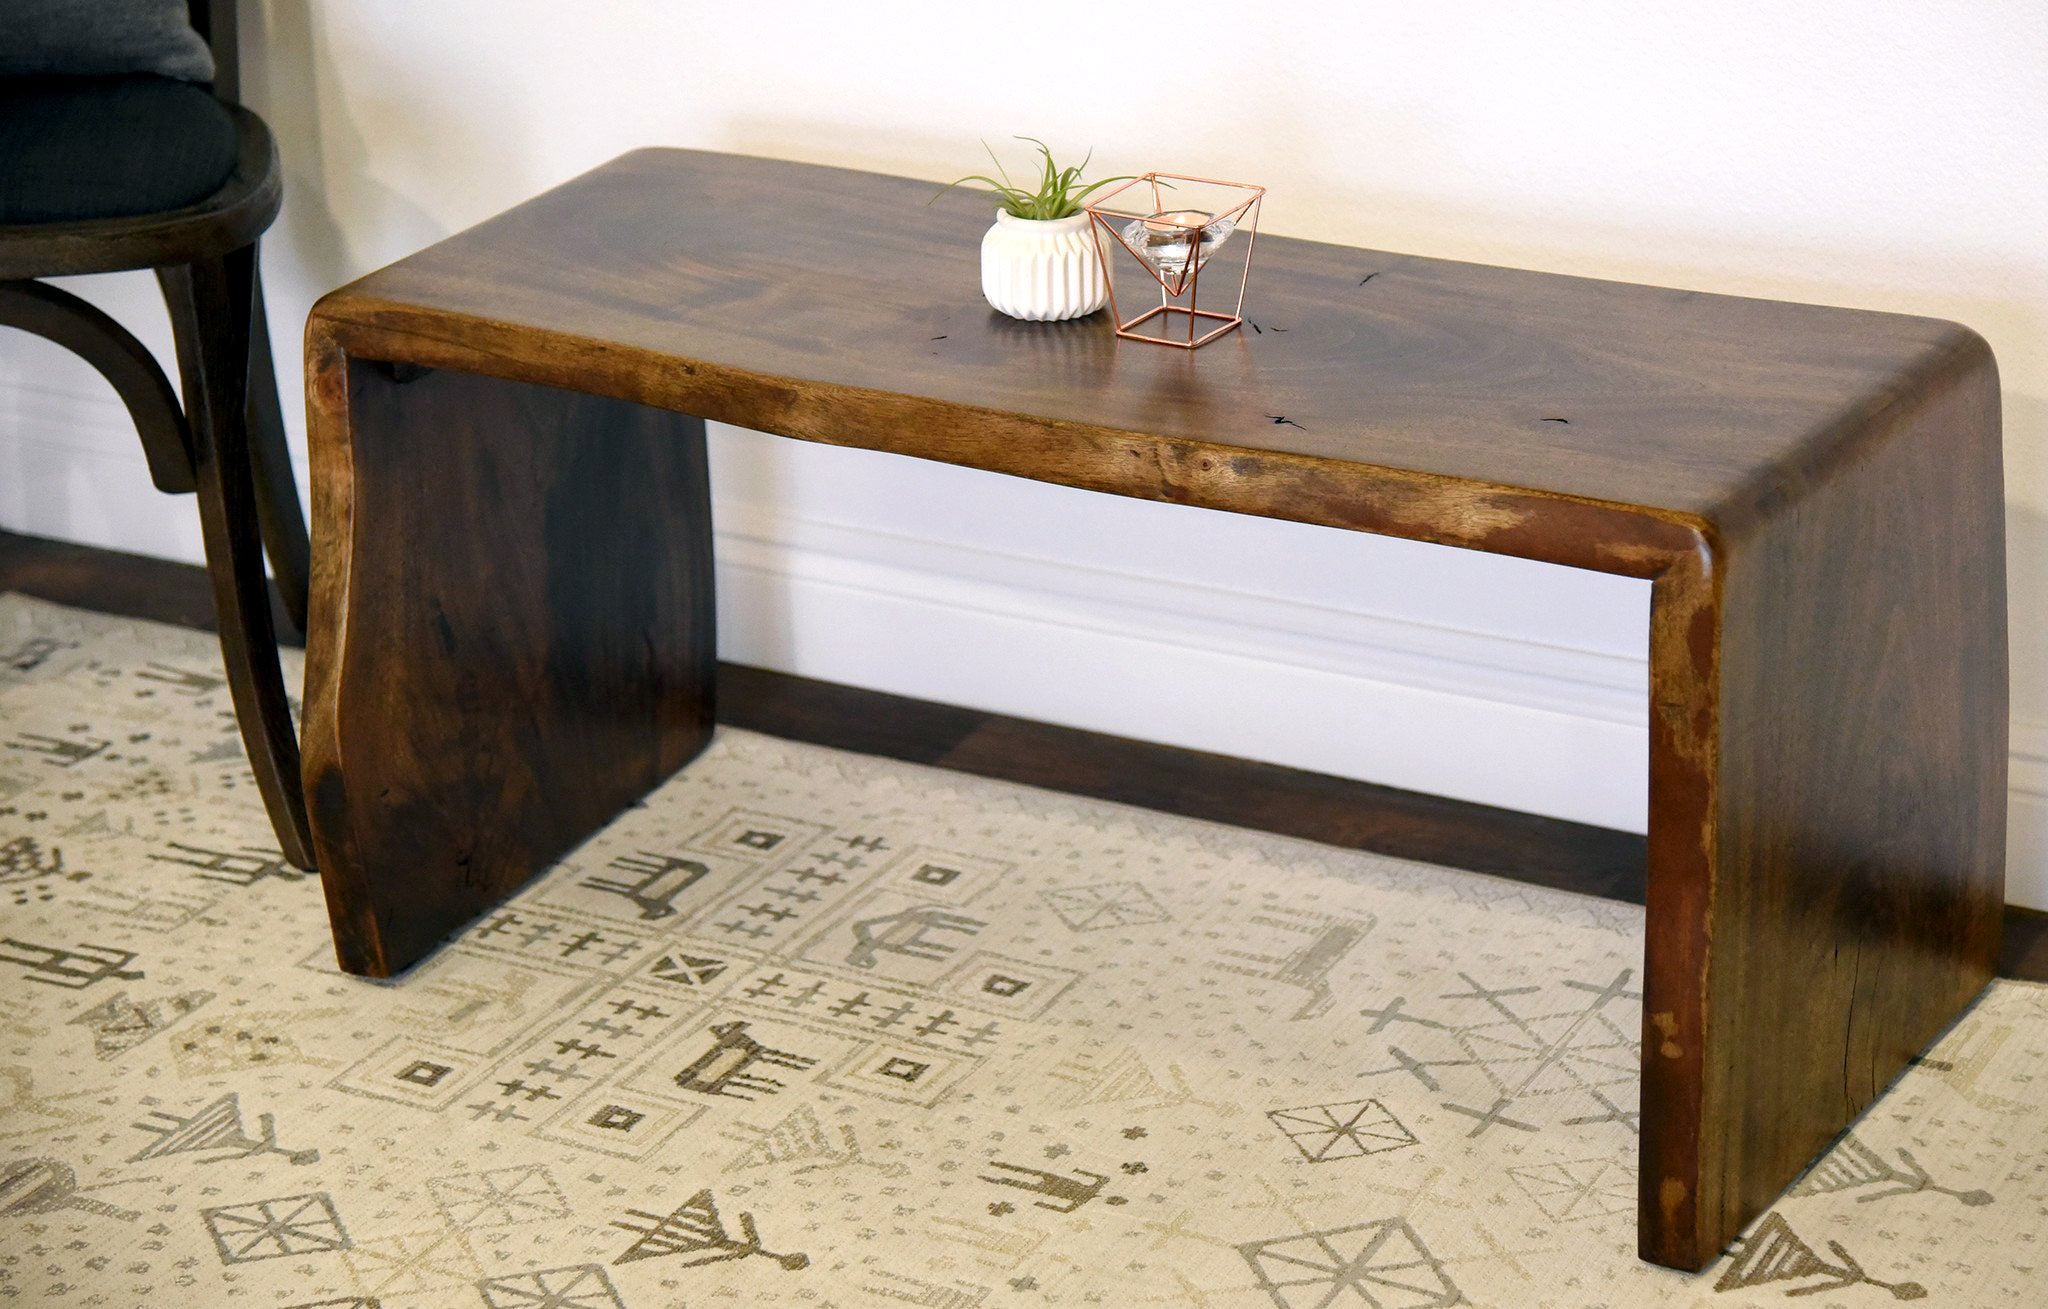 Mitered Live Edge Slab Bench Coffee Table Reclaimed Wood